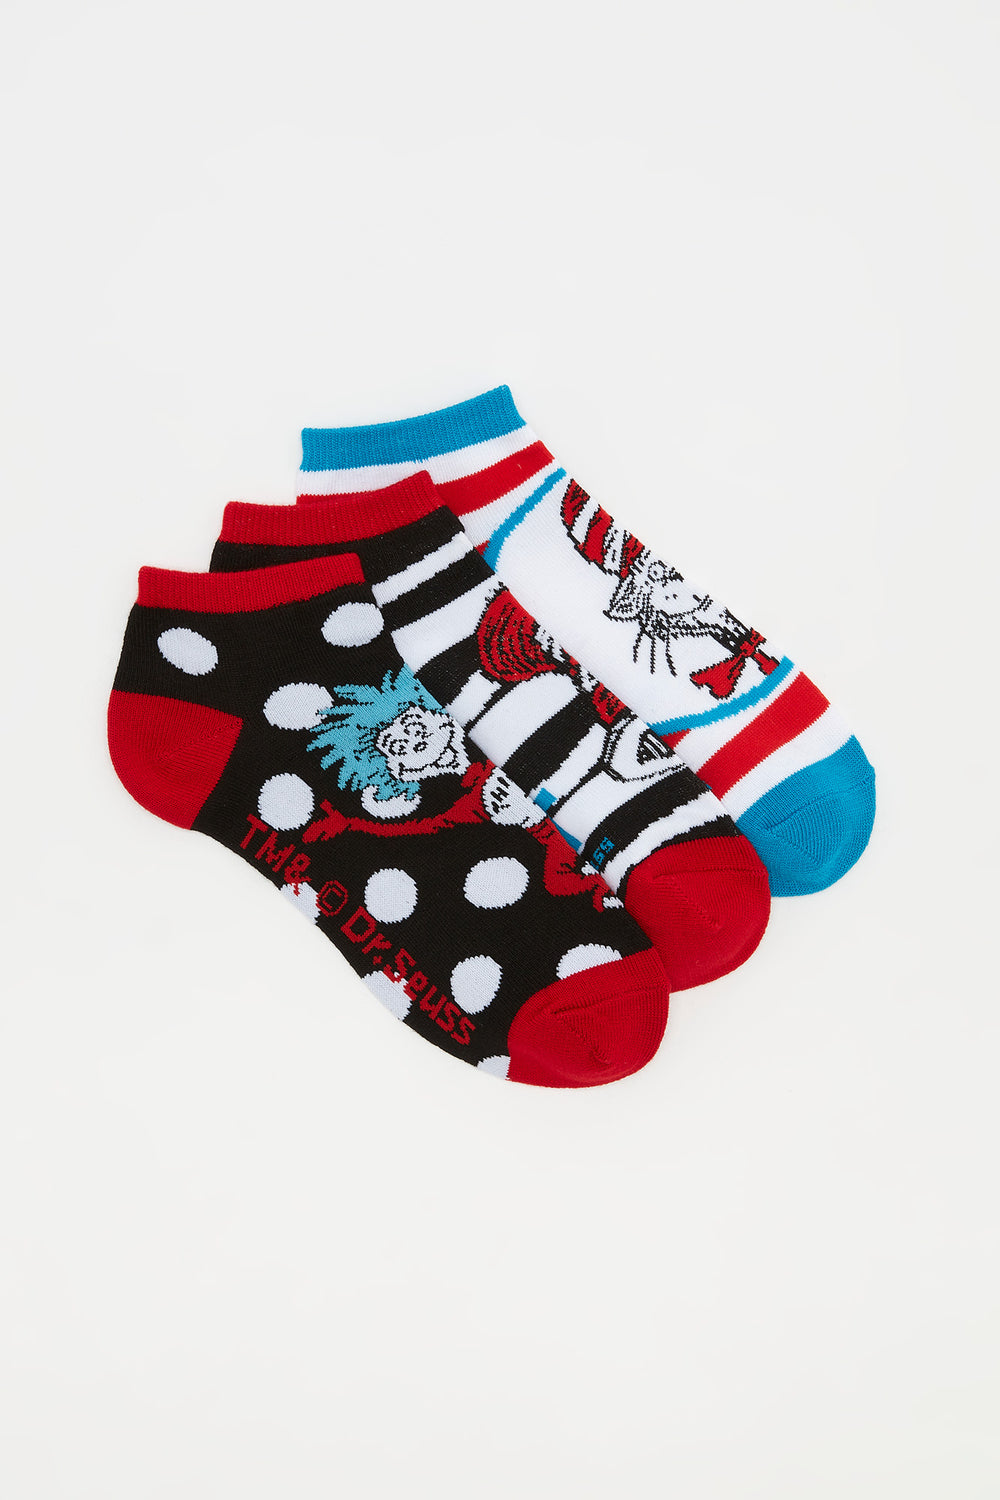 Cat In The Hat Ankle Socks (3 Pairs) Assorted